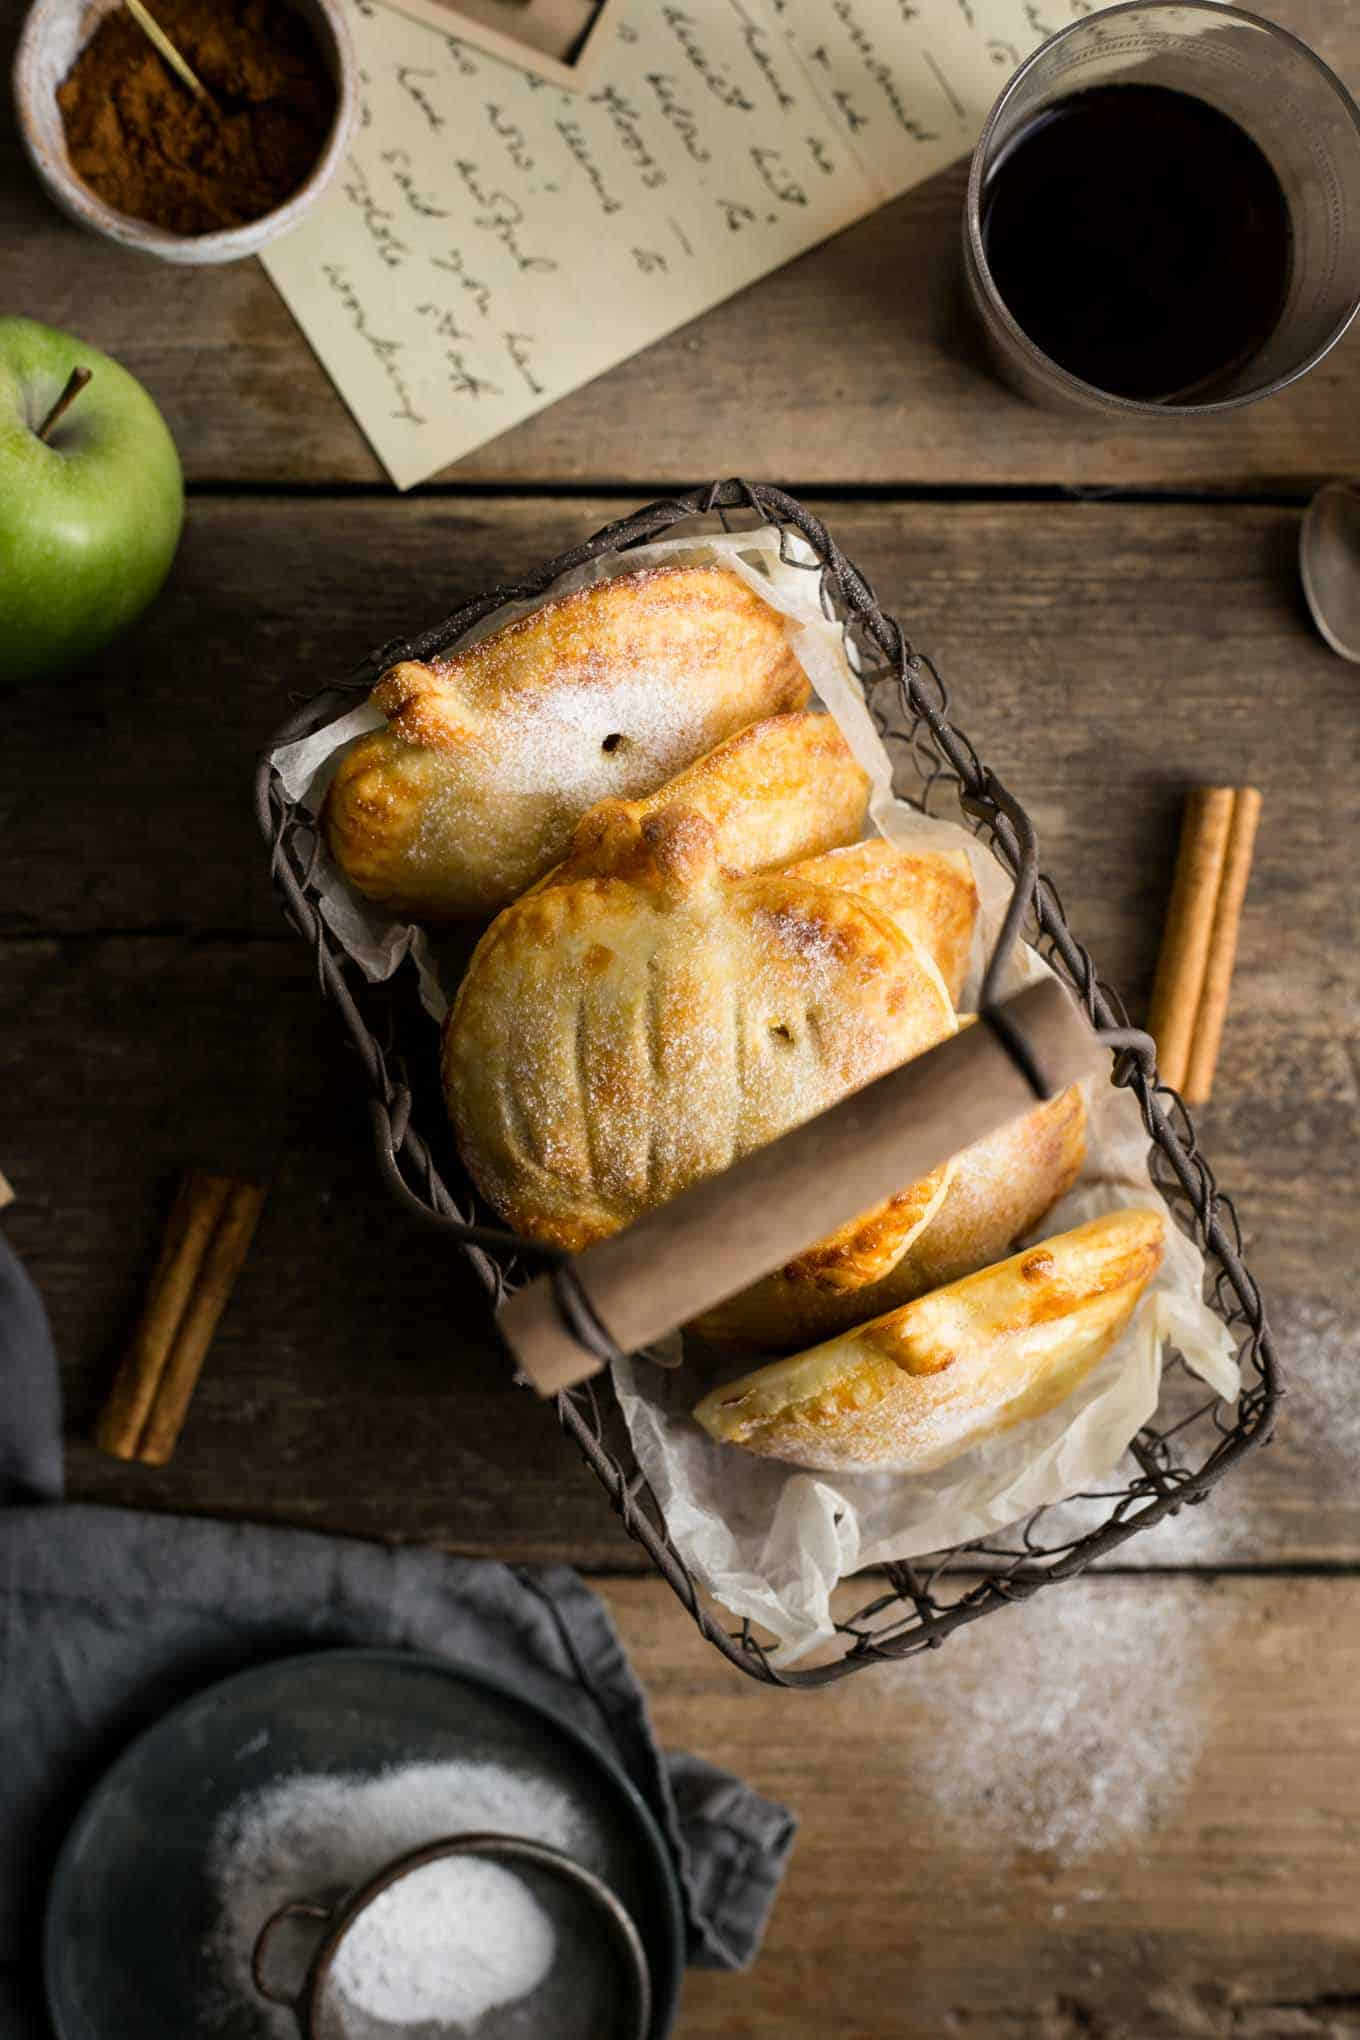 Home made spiced apple and pumpkin mini-pies #vegan #pumpkin | via @annabanana.co